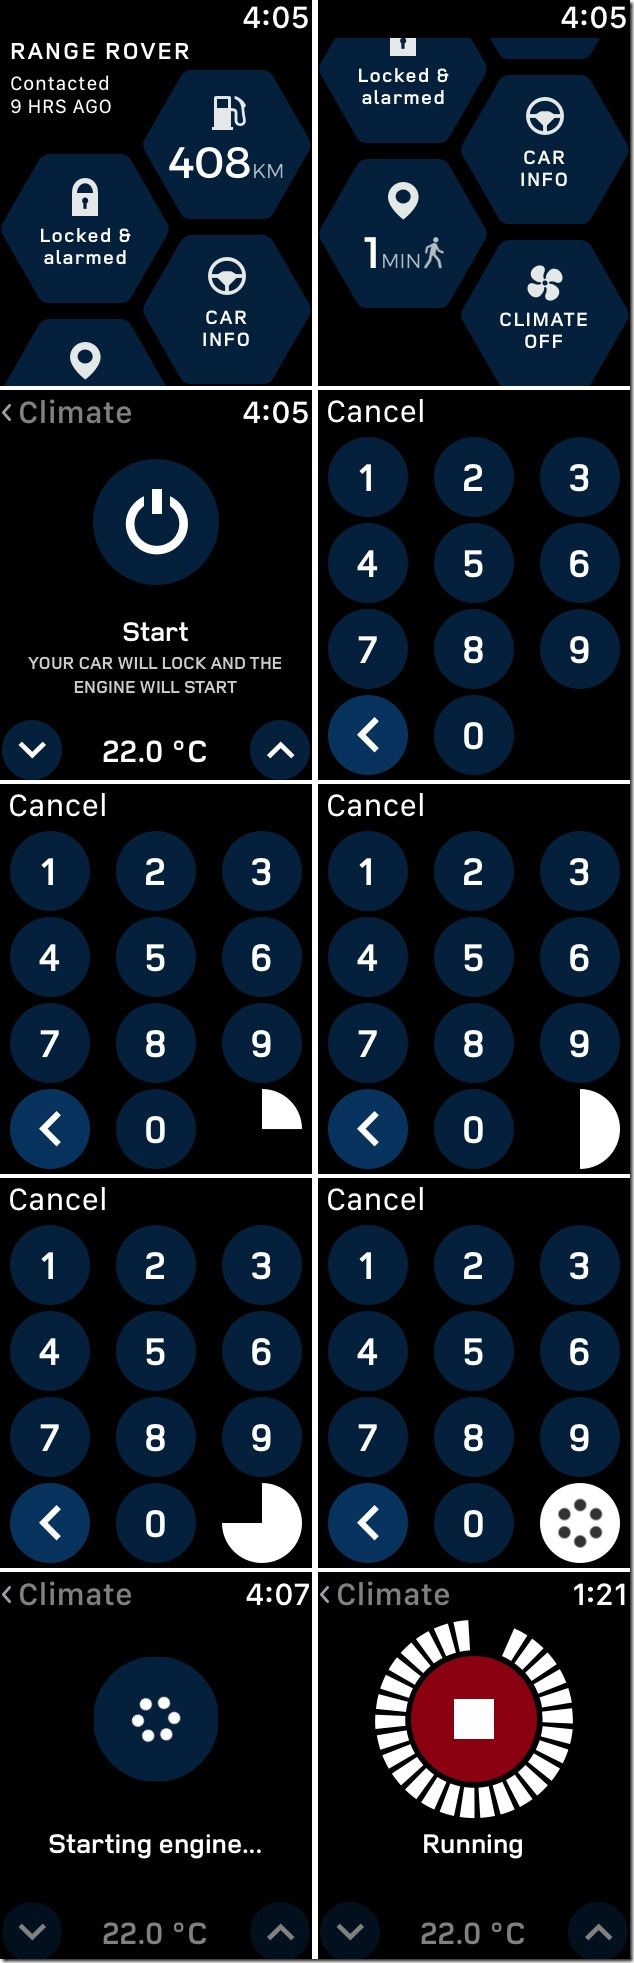 my17-l405-ictp-remote-climate-apple-watch